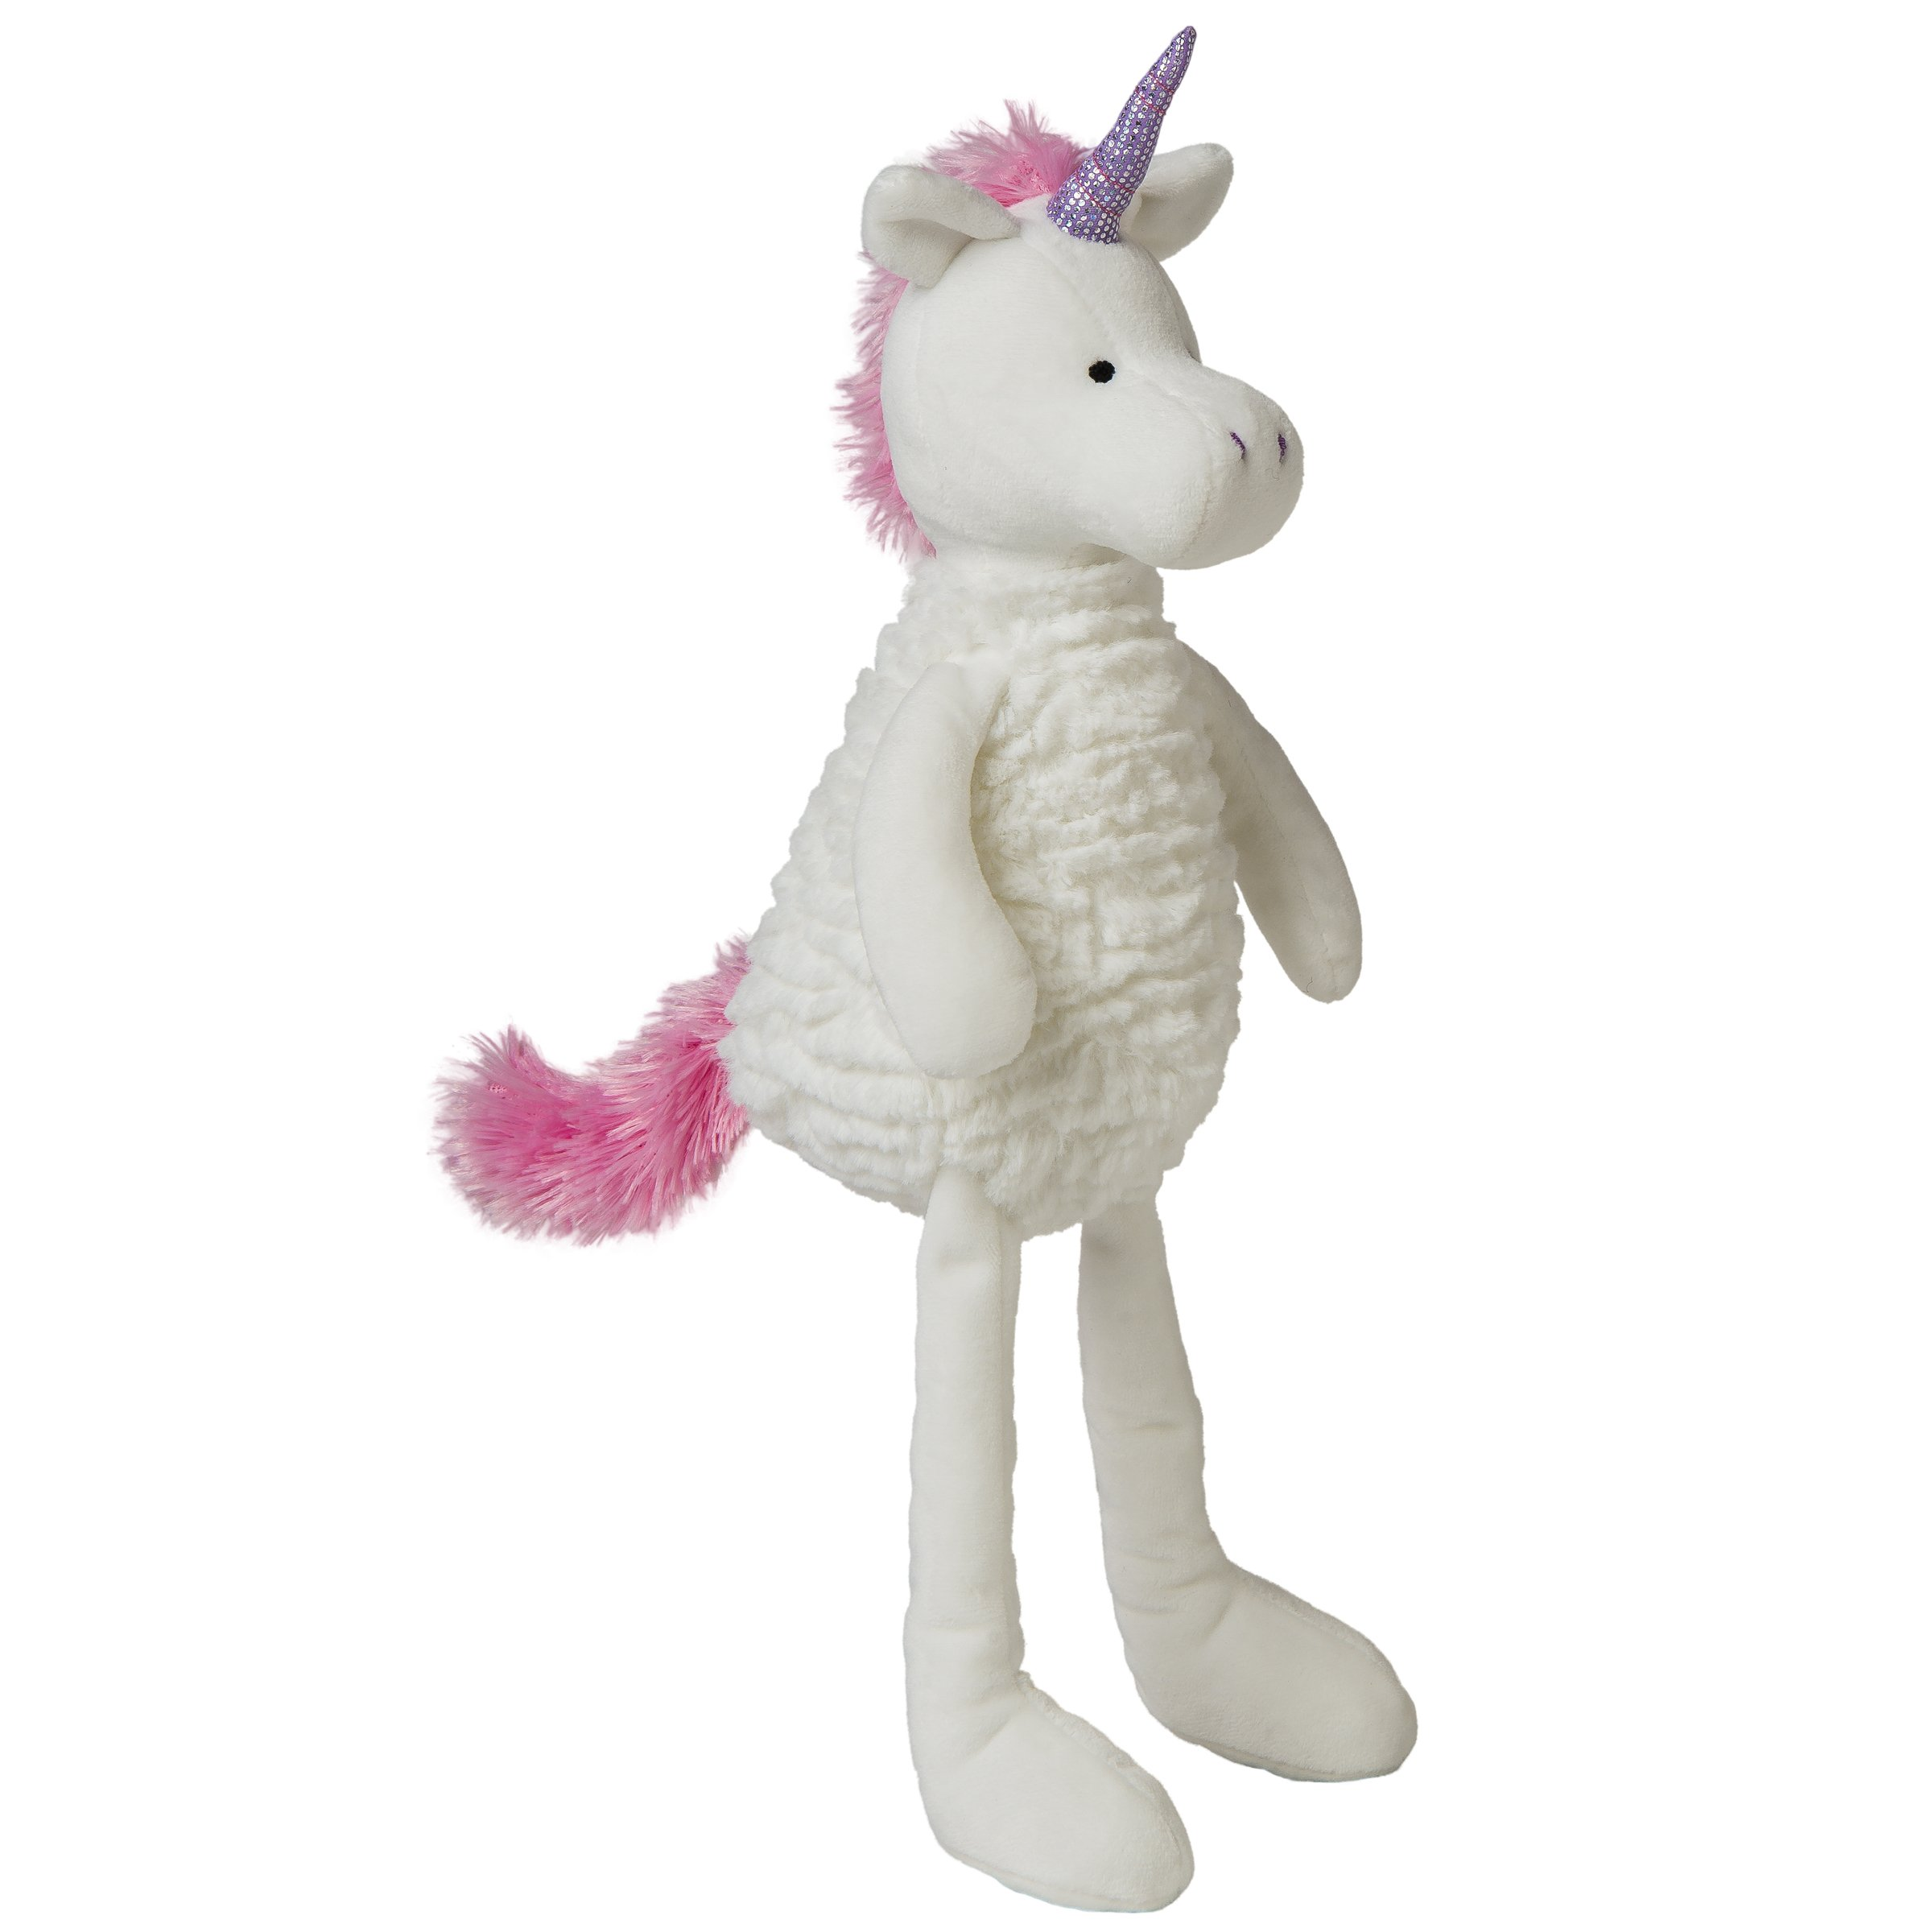 Mary Meyer Talls 'N Smalls Soft Toy, Talls Unicorn